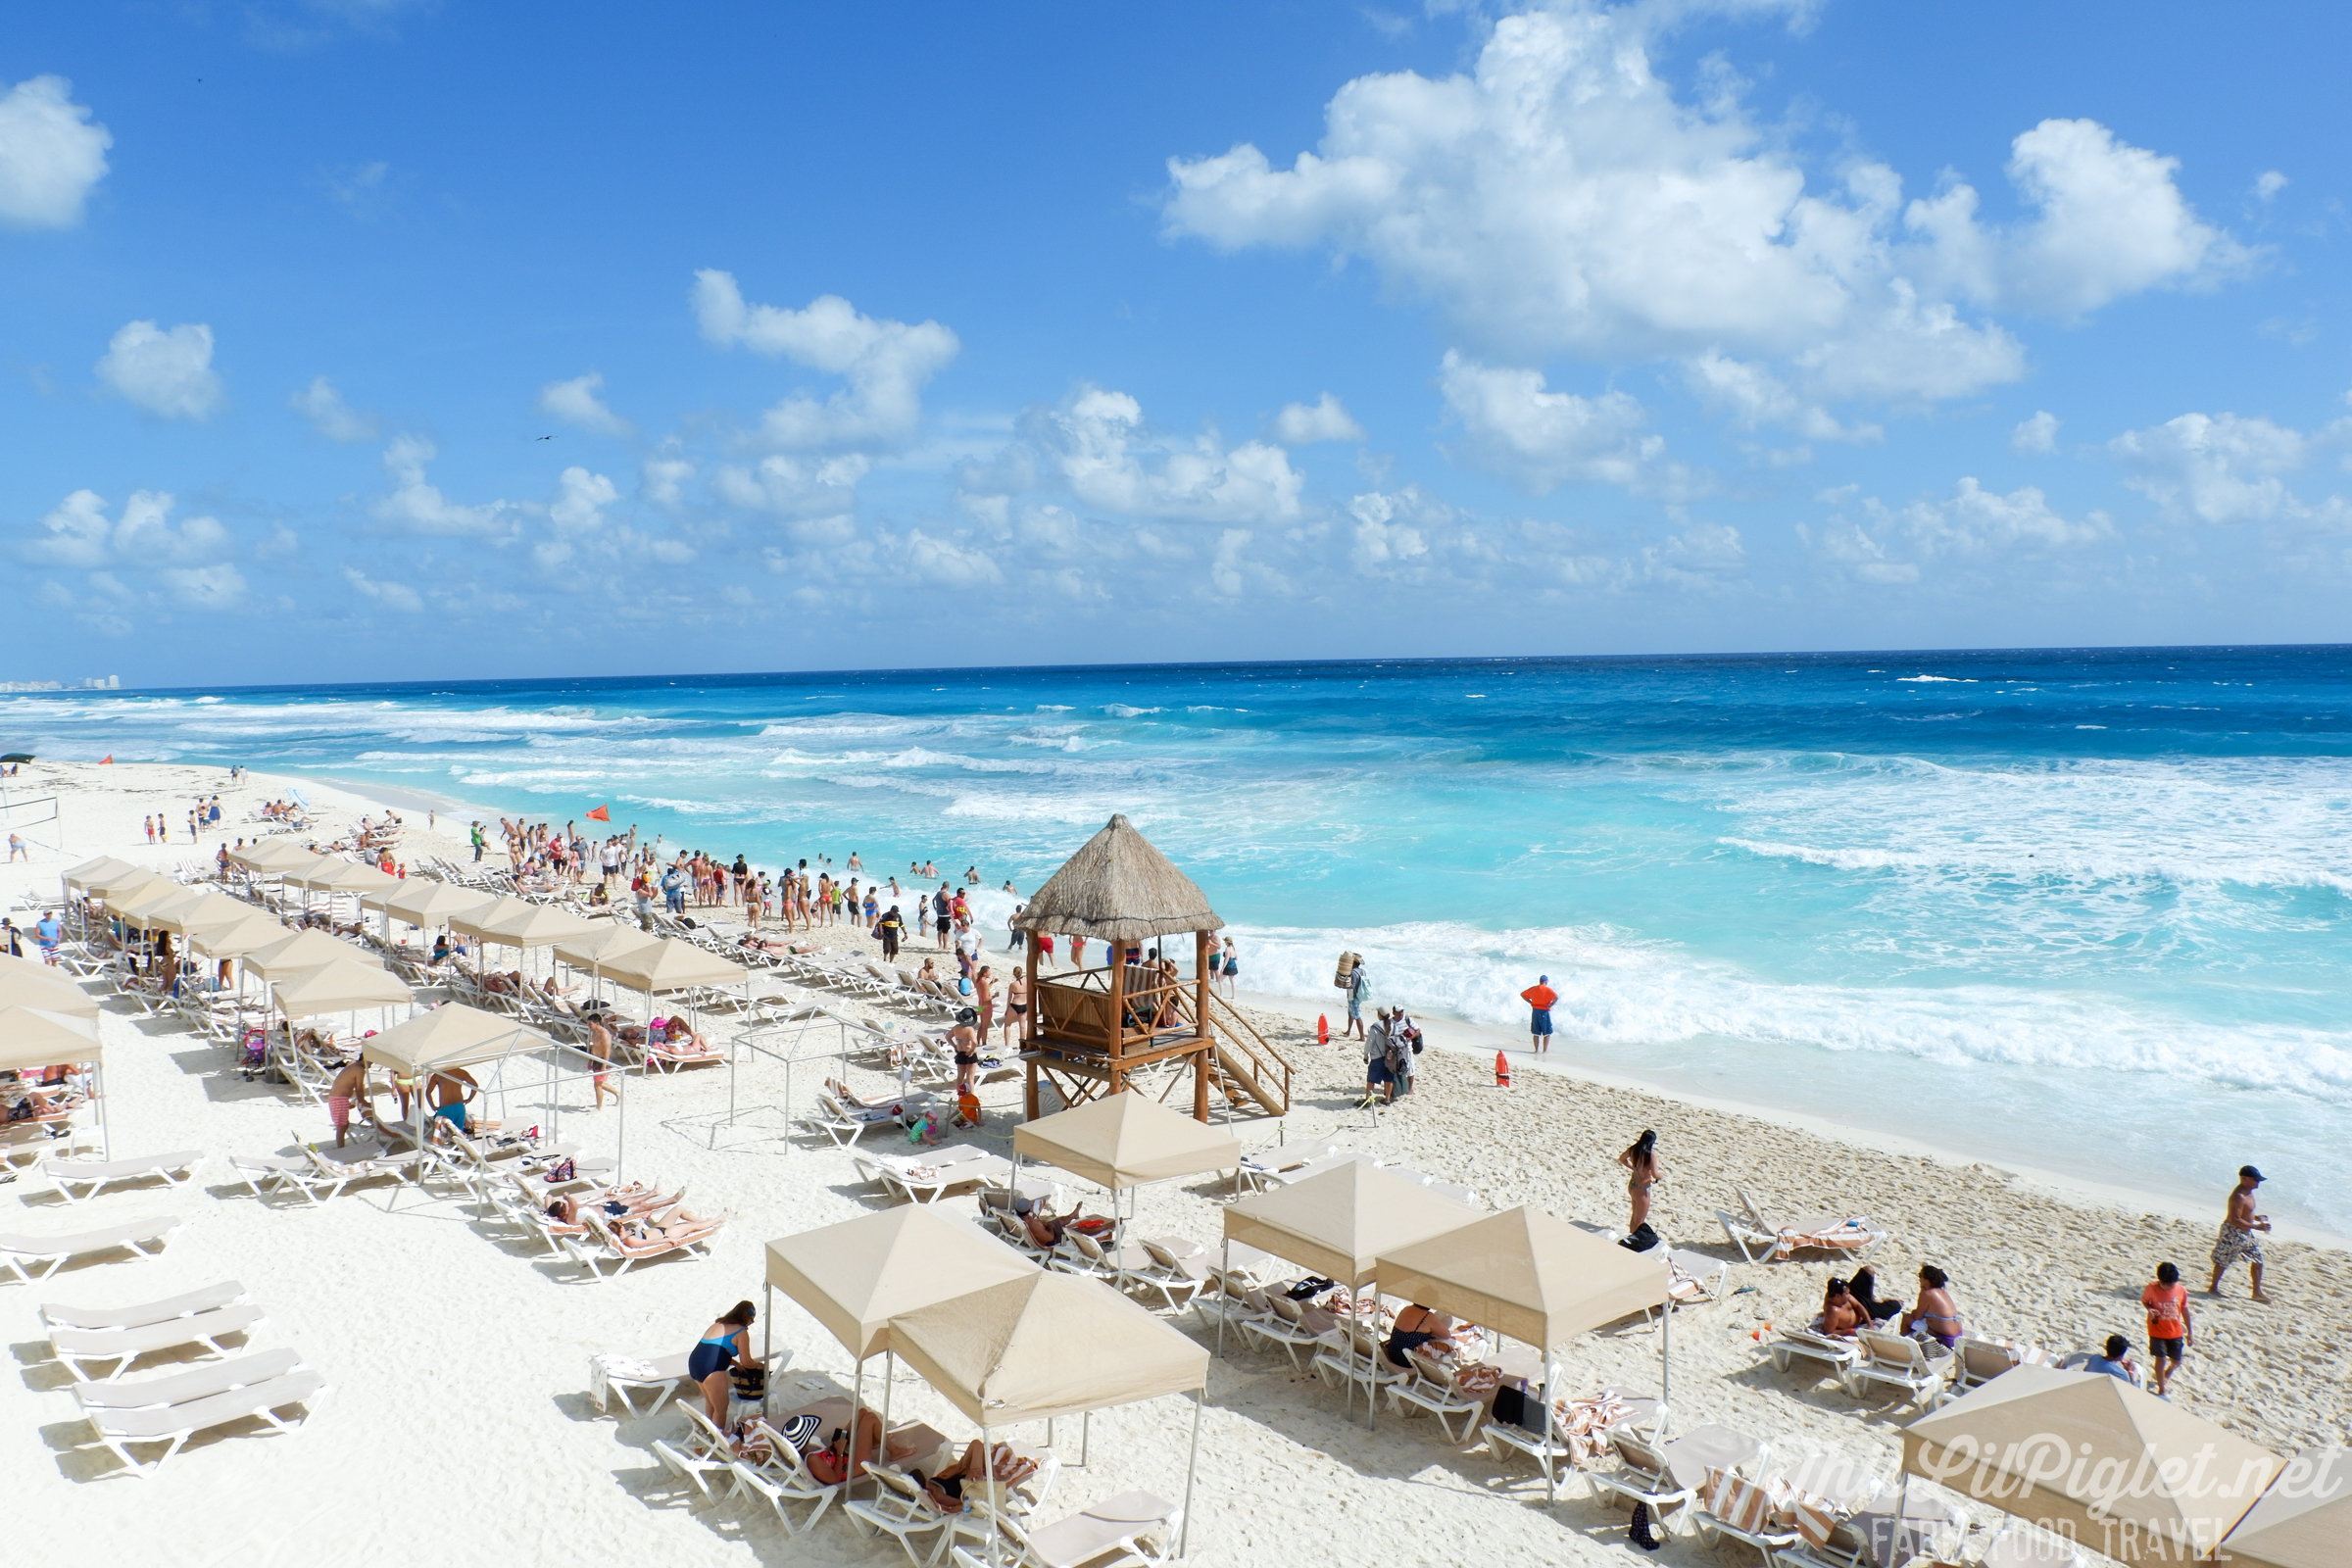 Family Vacations for All Ages at Cancun Paradise Club Resort: Things to Do - White Sand Beach and Turquoise Blue Water // thislilpiglet.net